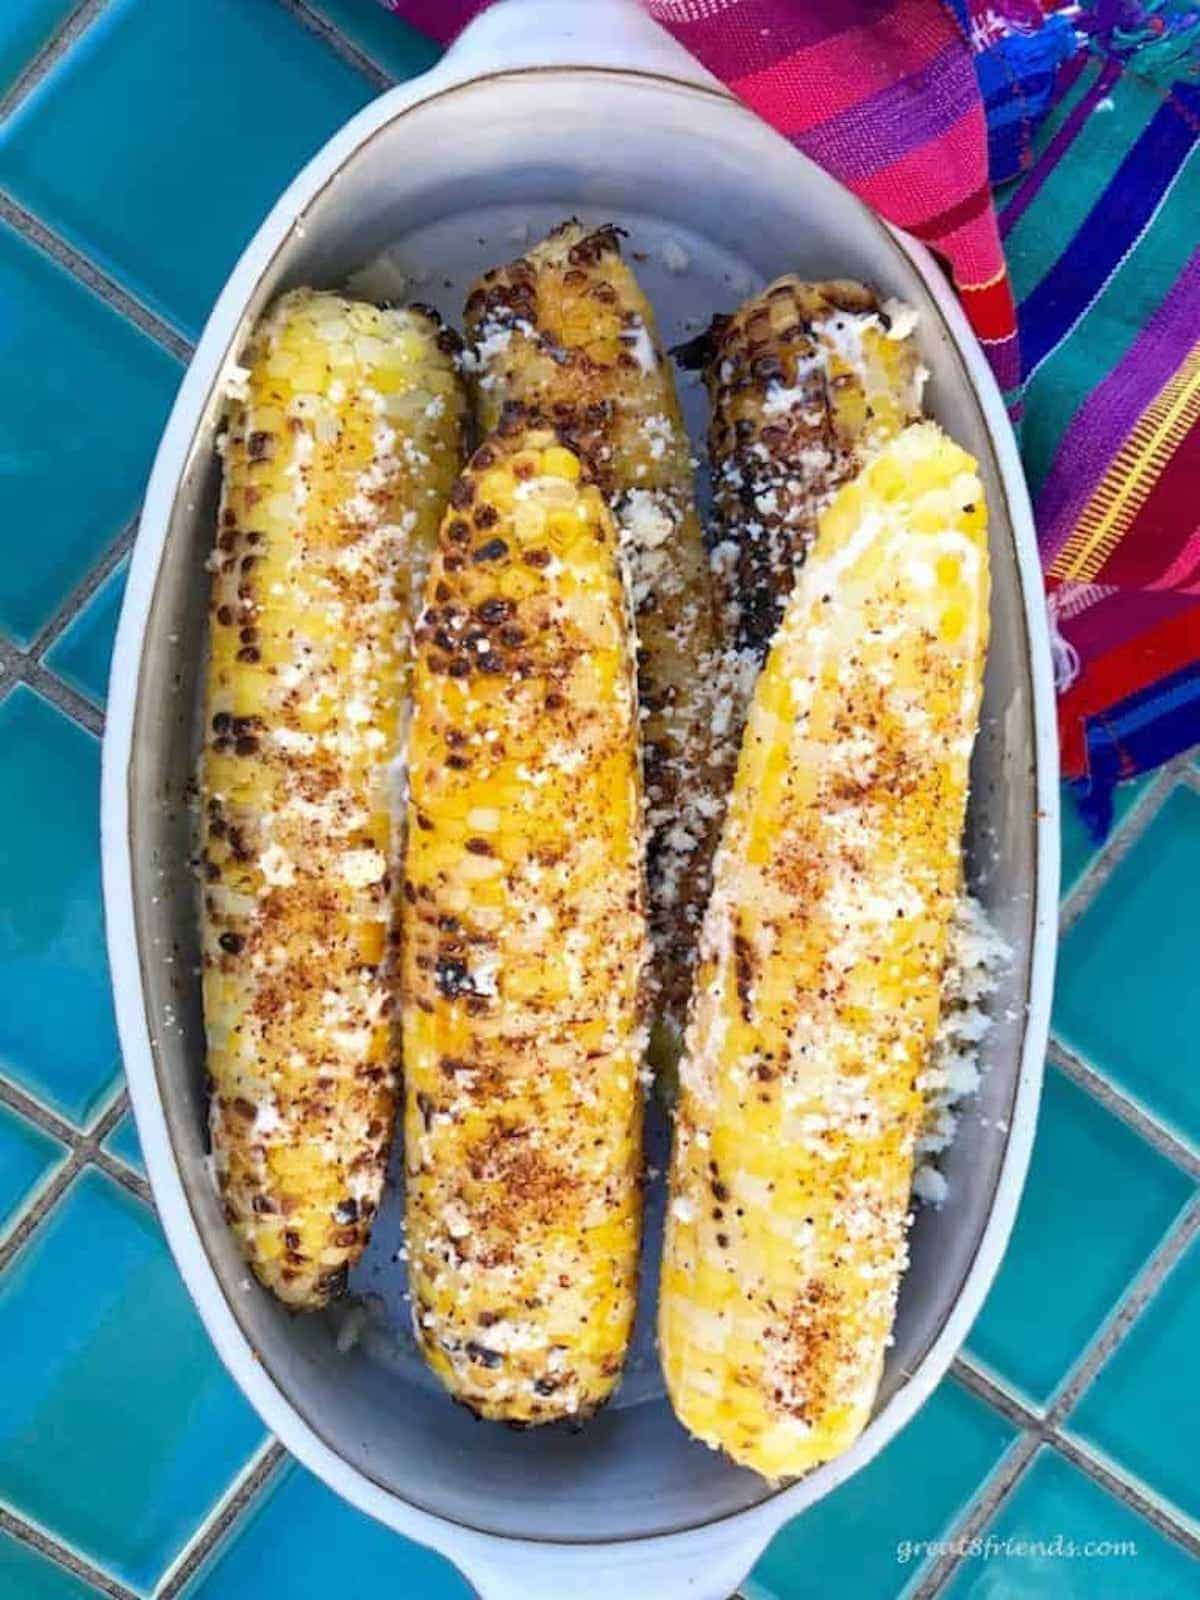 Grilled corn on the cob in an oval white baking dish with a colorful napkin on the side.